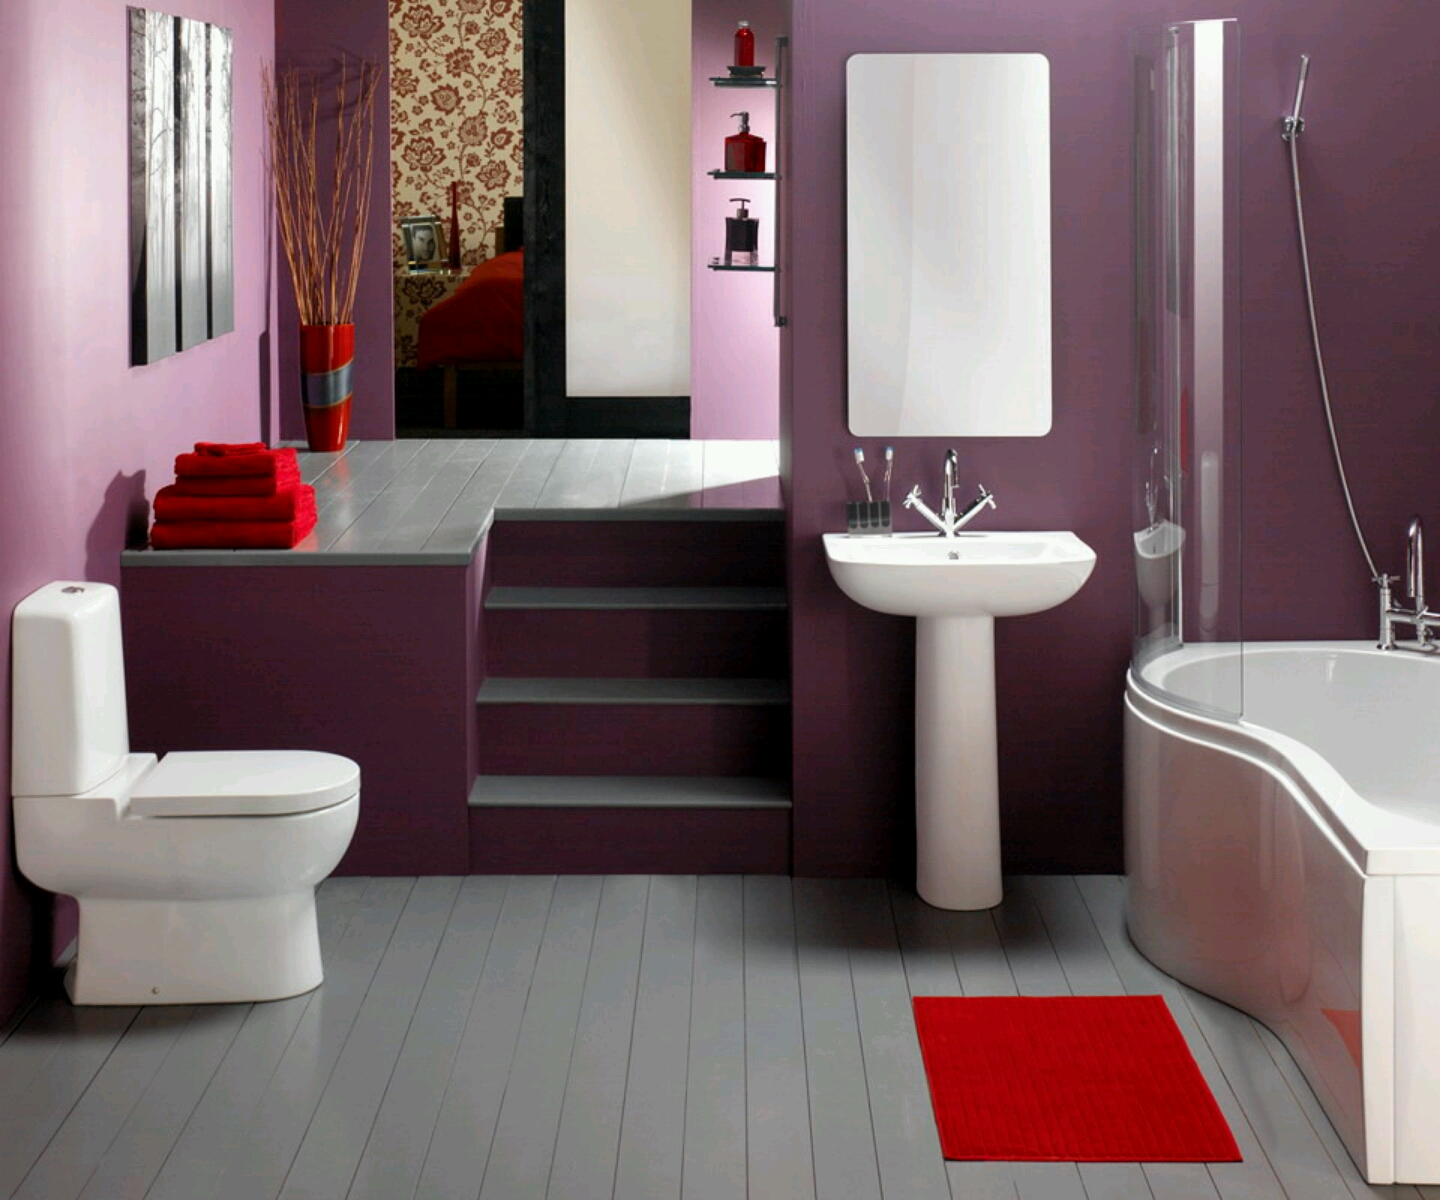 New home designs latest luxury modern bathrooms designs for New style bathroom designs